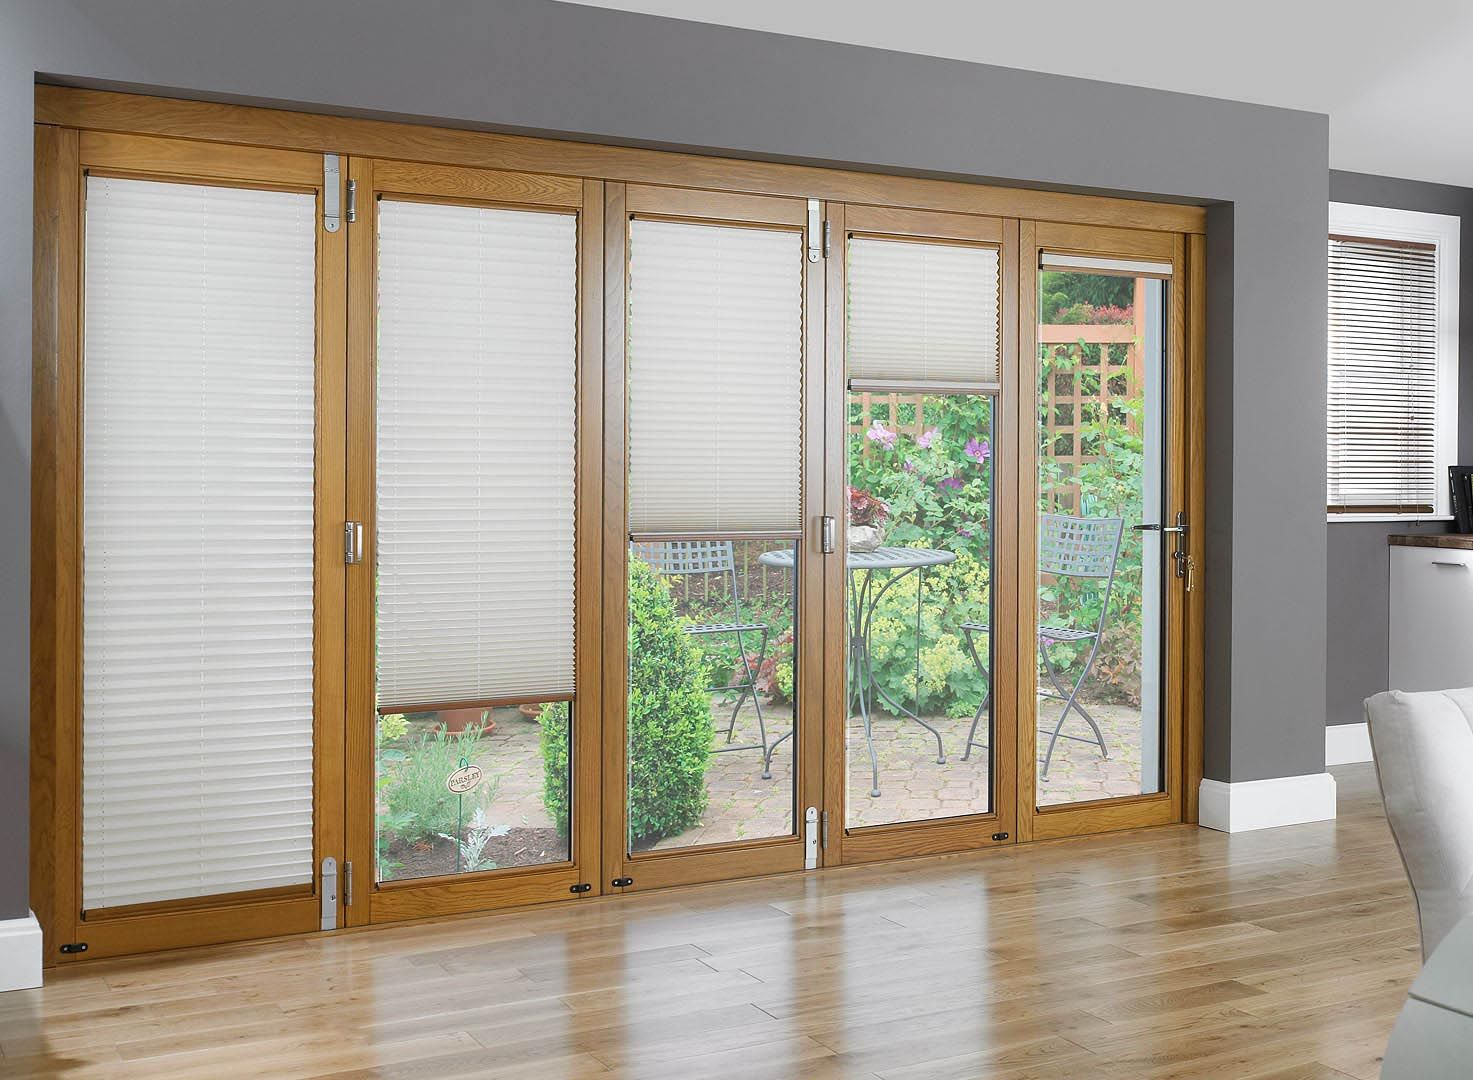 Cellular shades for french doors home stuff pinterest doors cellular shades for french doors planetlyrics Choice Image